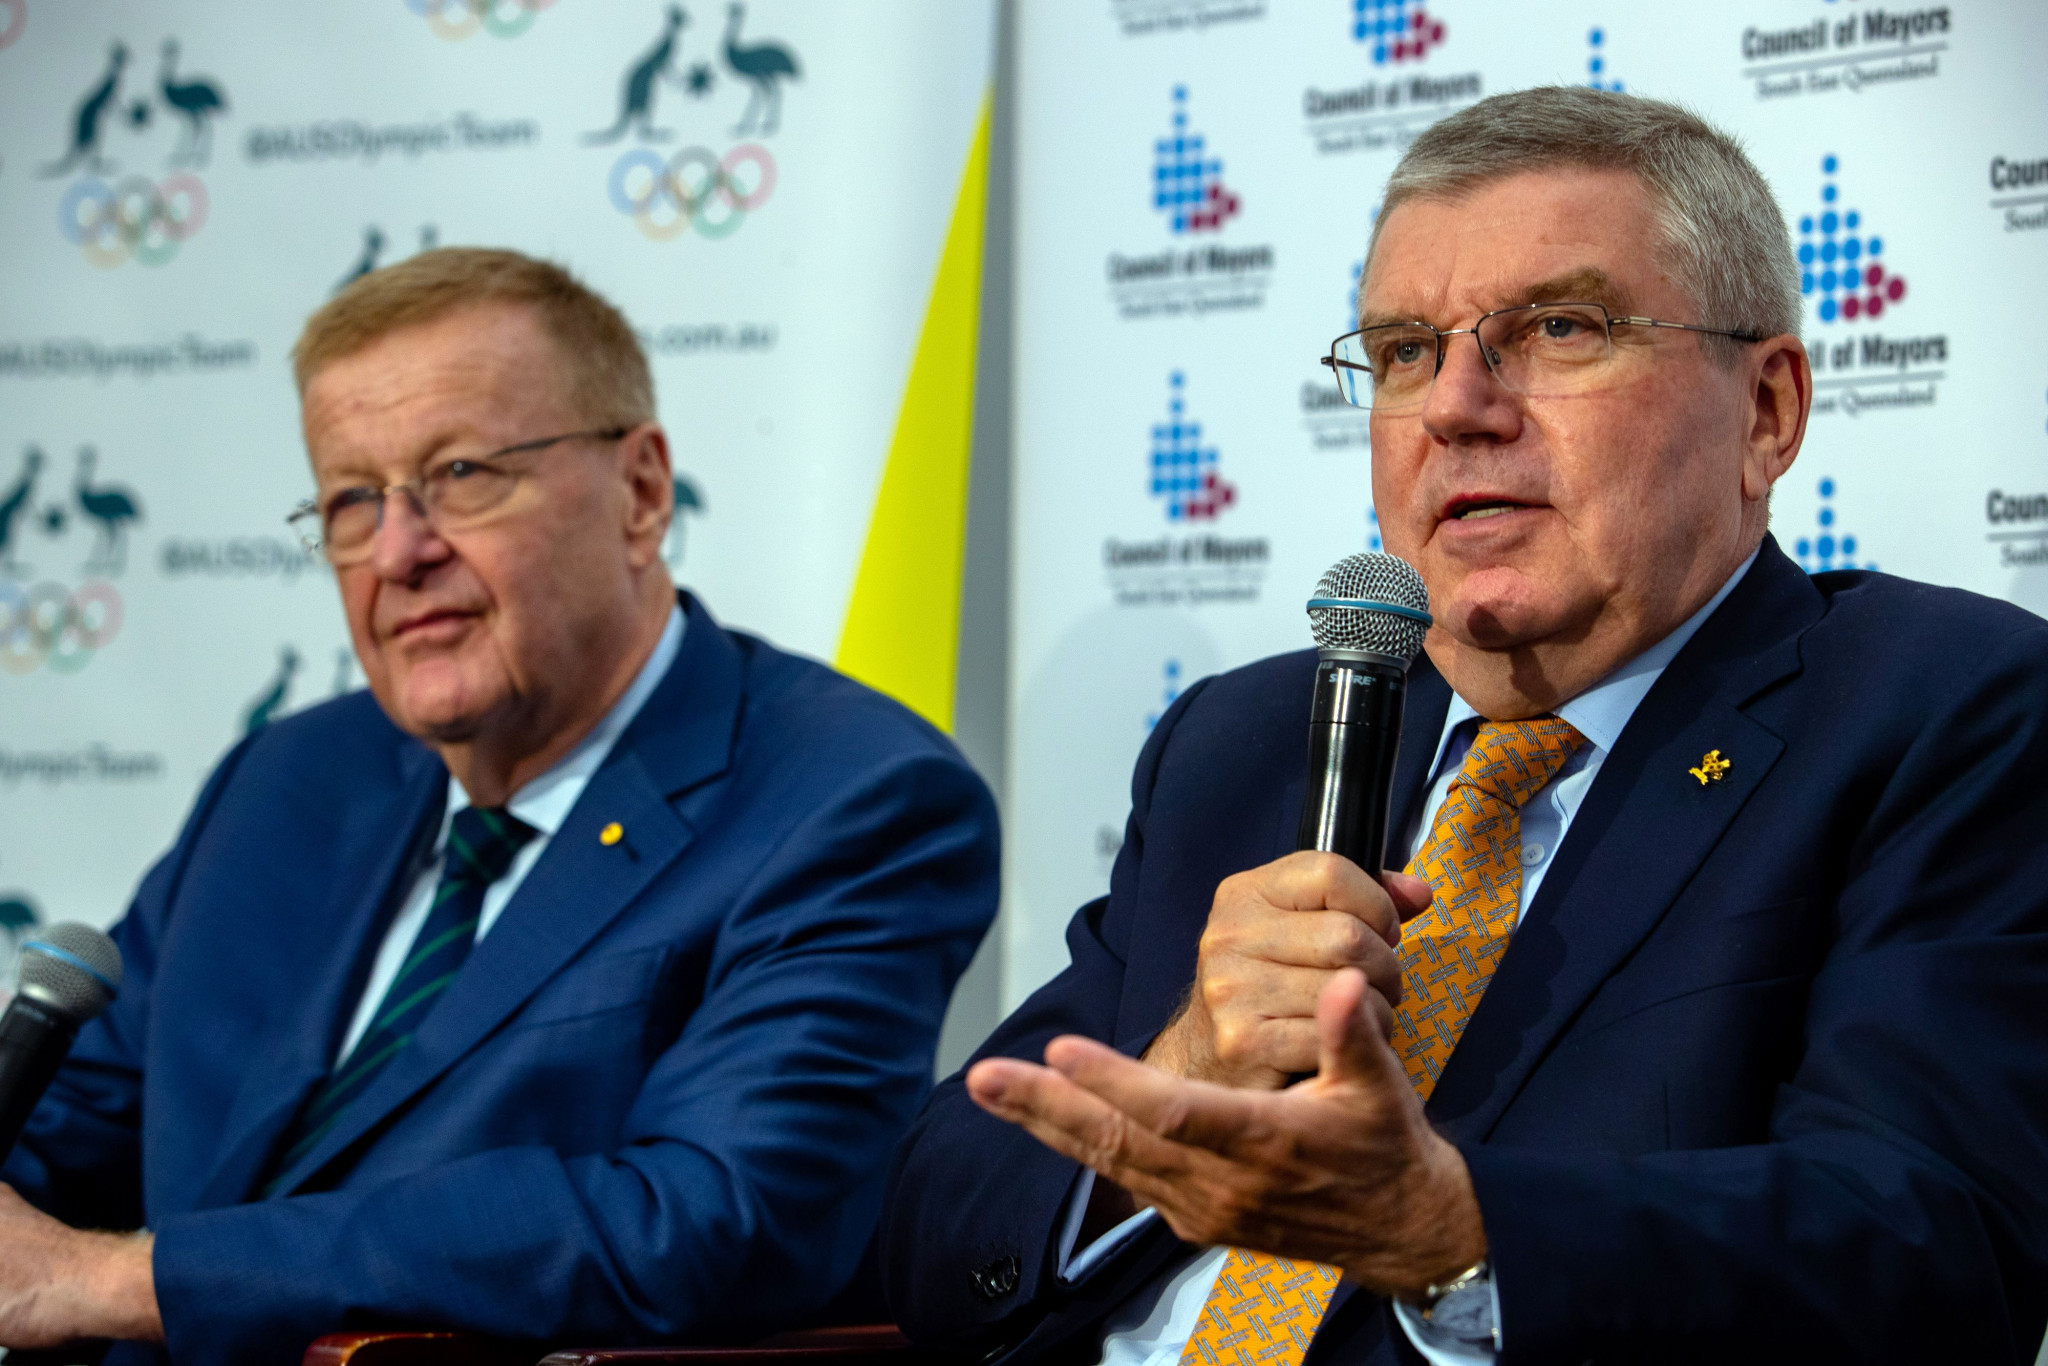 Coates re-elected President of International Council of Arbitration for Sport